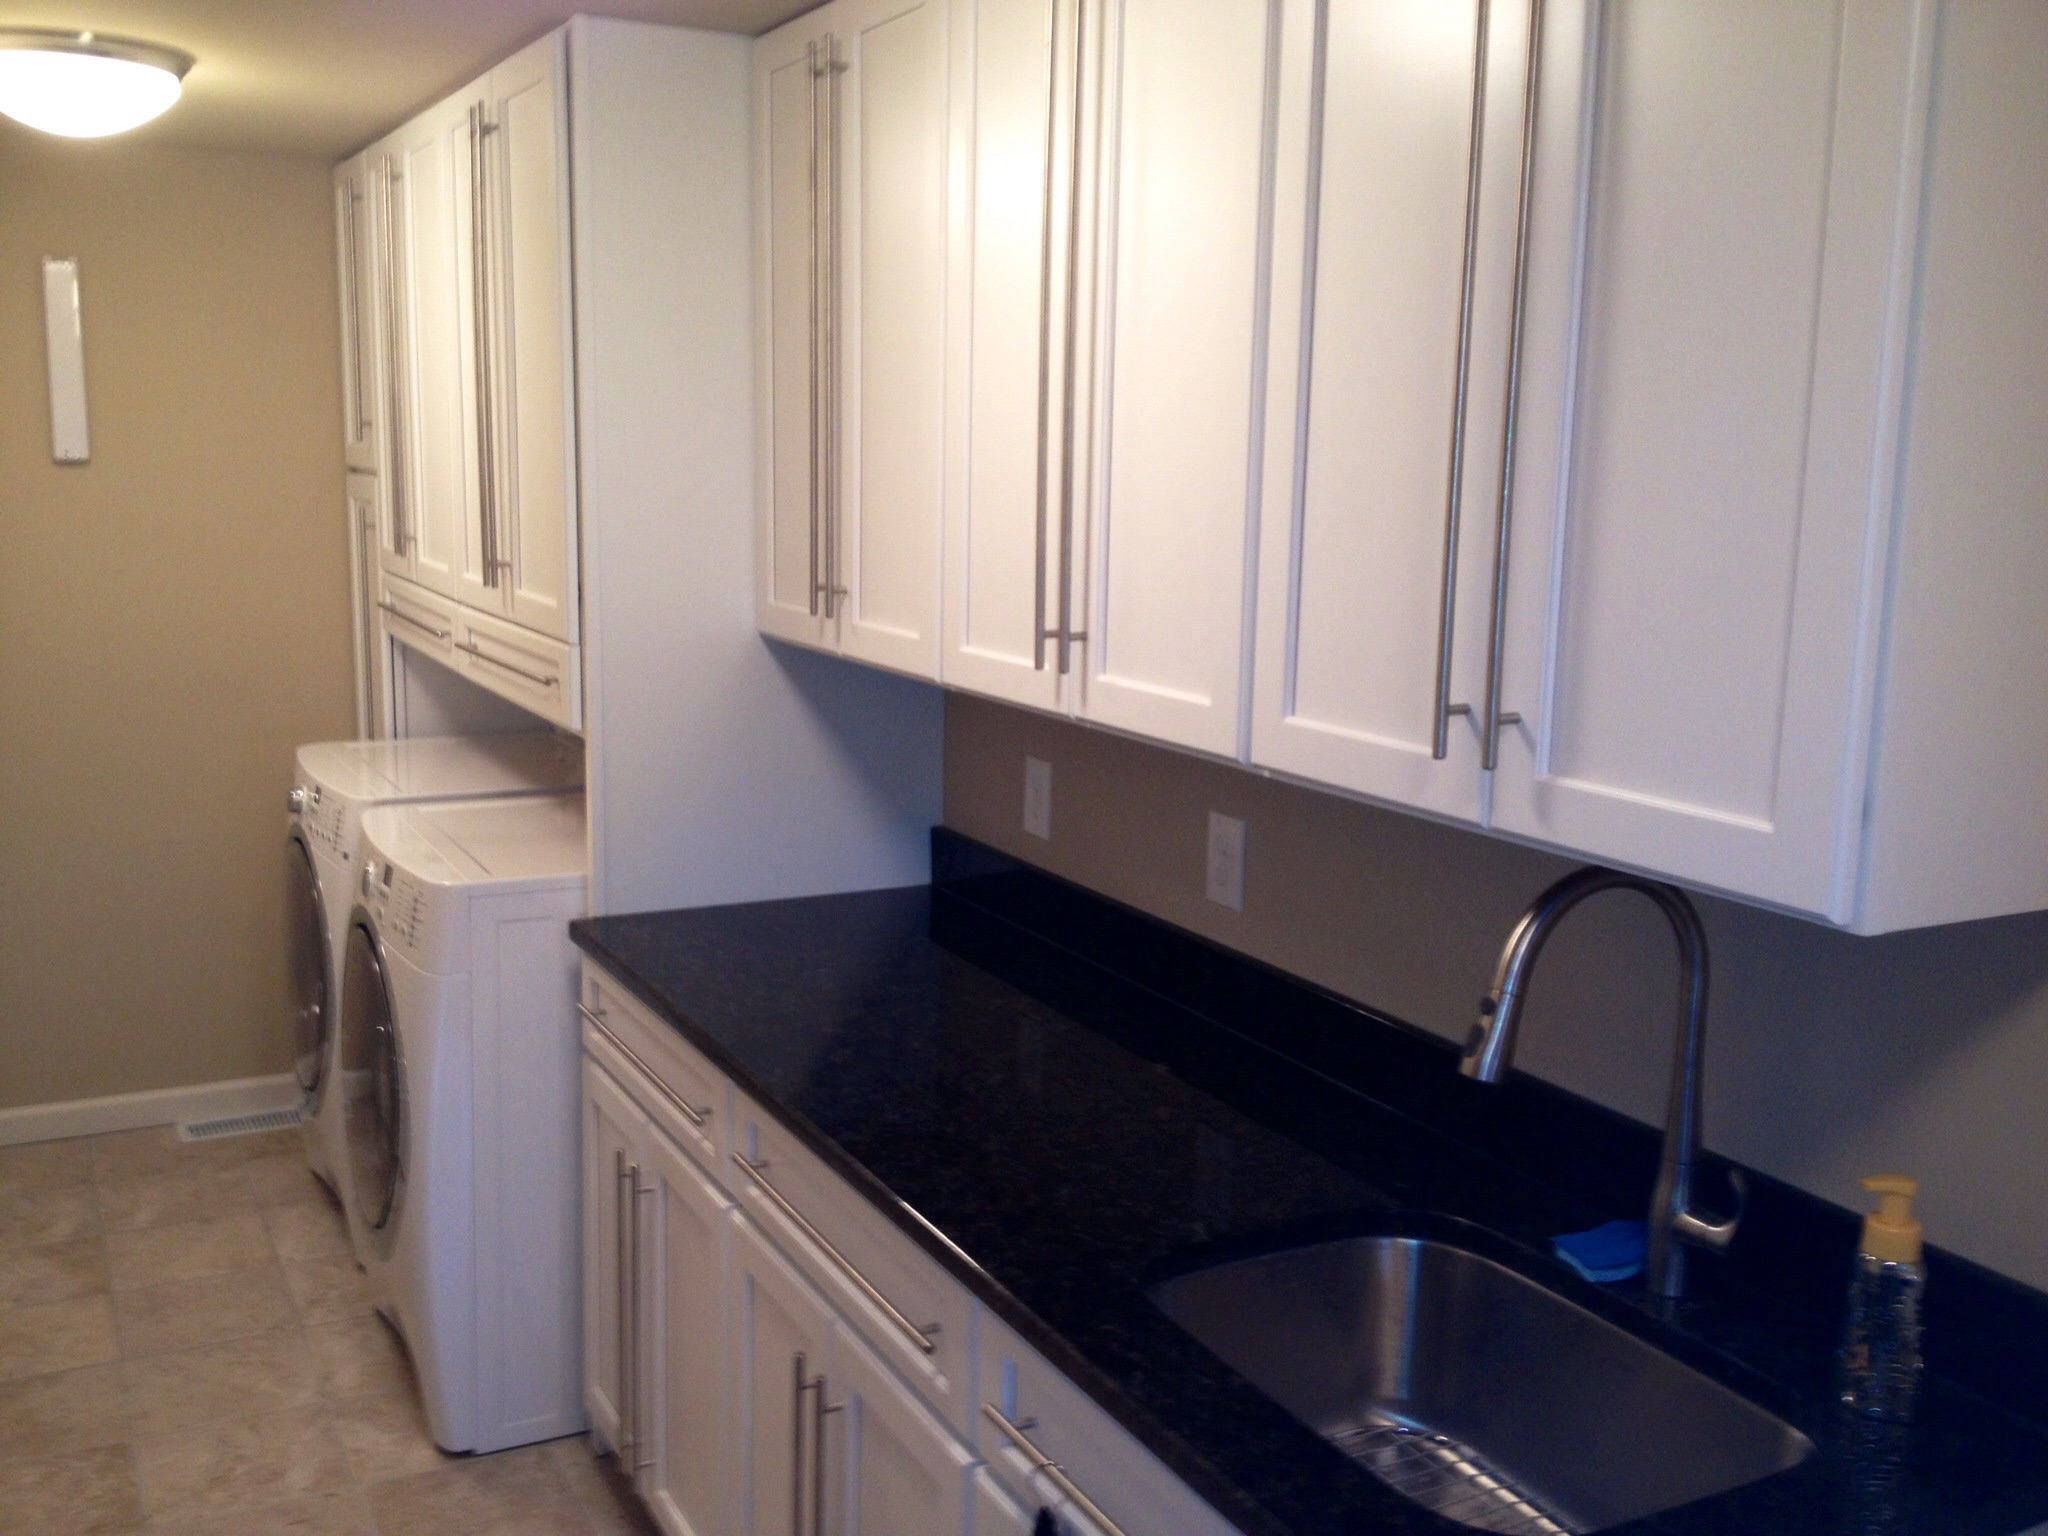 A master builders interior renovations for Laundry room renovation